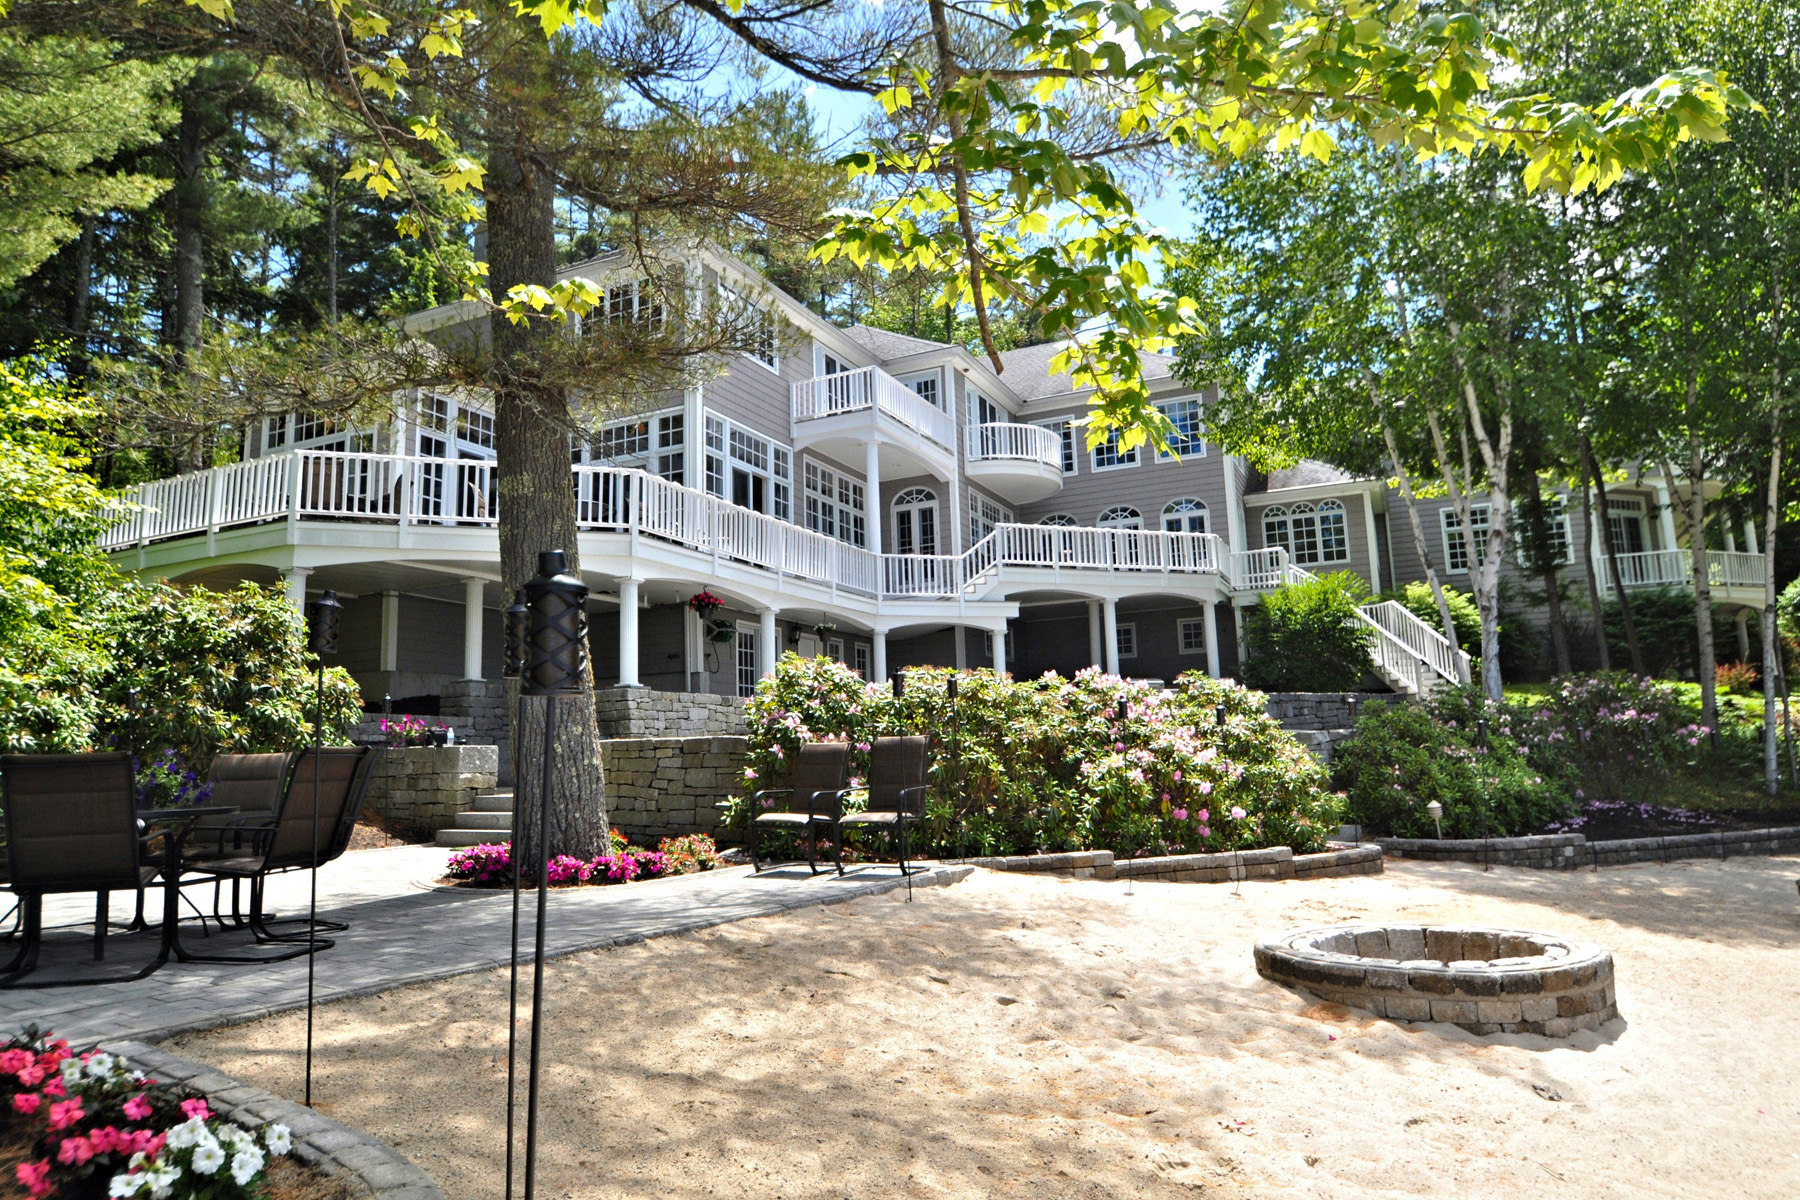 Single Family Home for Sale at 96 Hopewell Rd, Alton Alton, New Hampshire 03809 United States